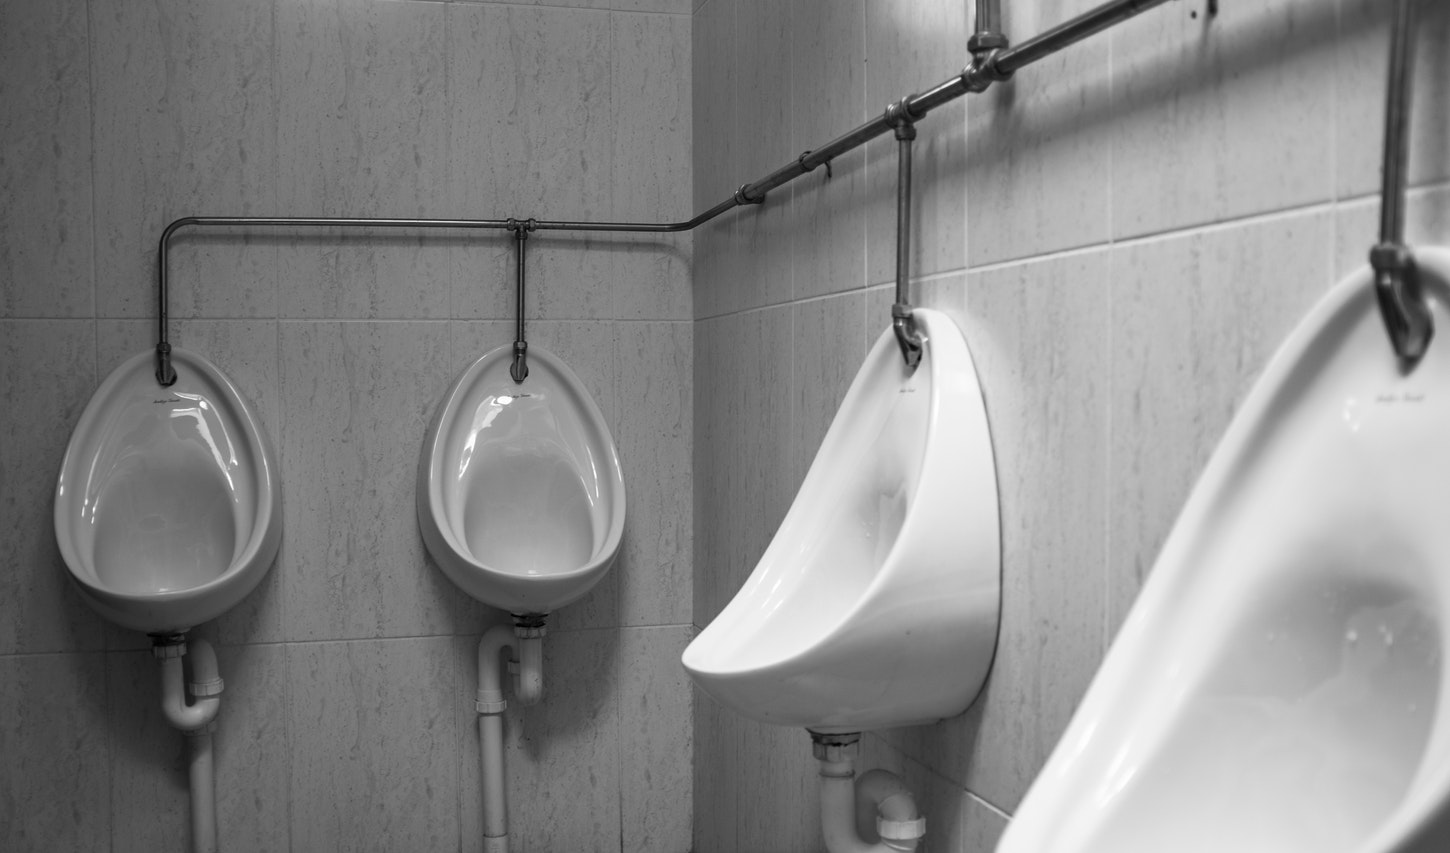 White urinals hanging on two walls